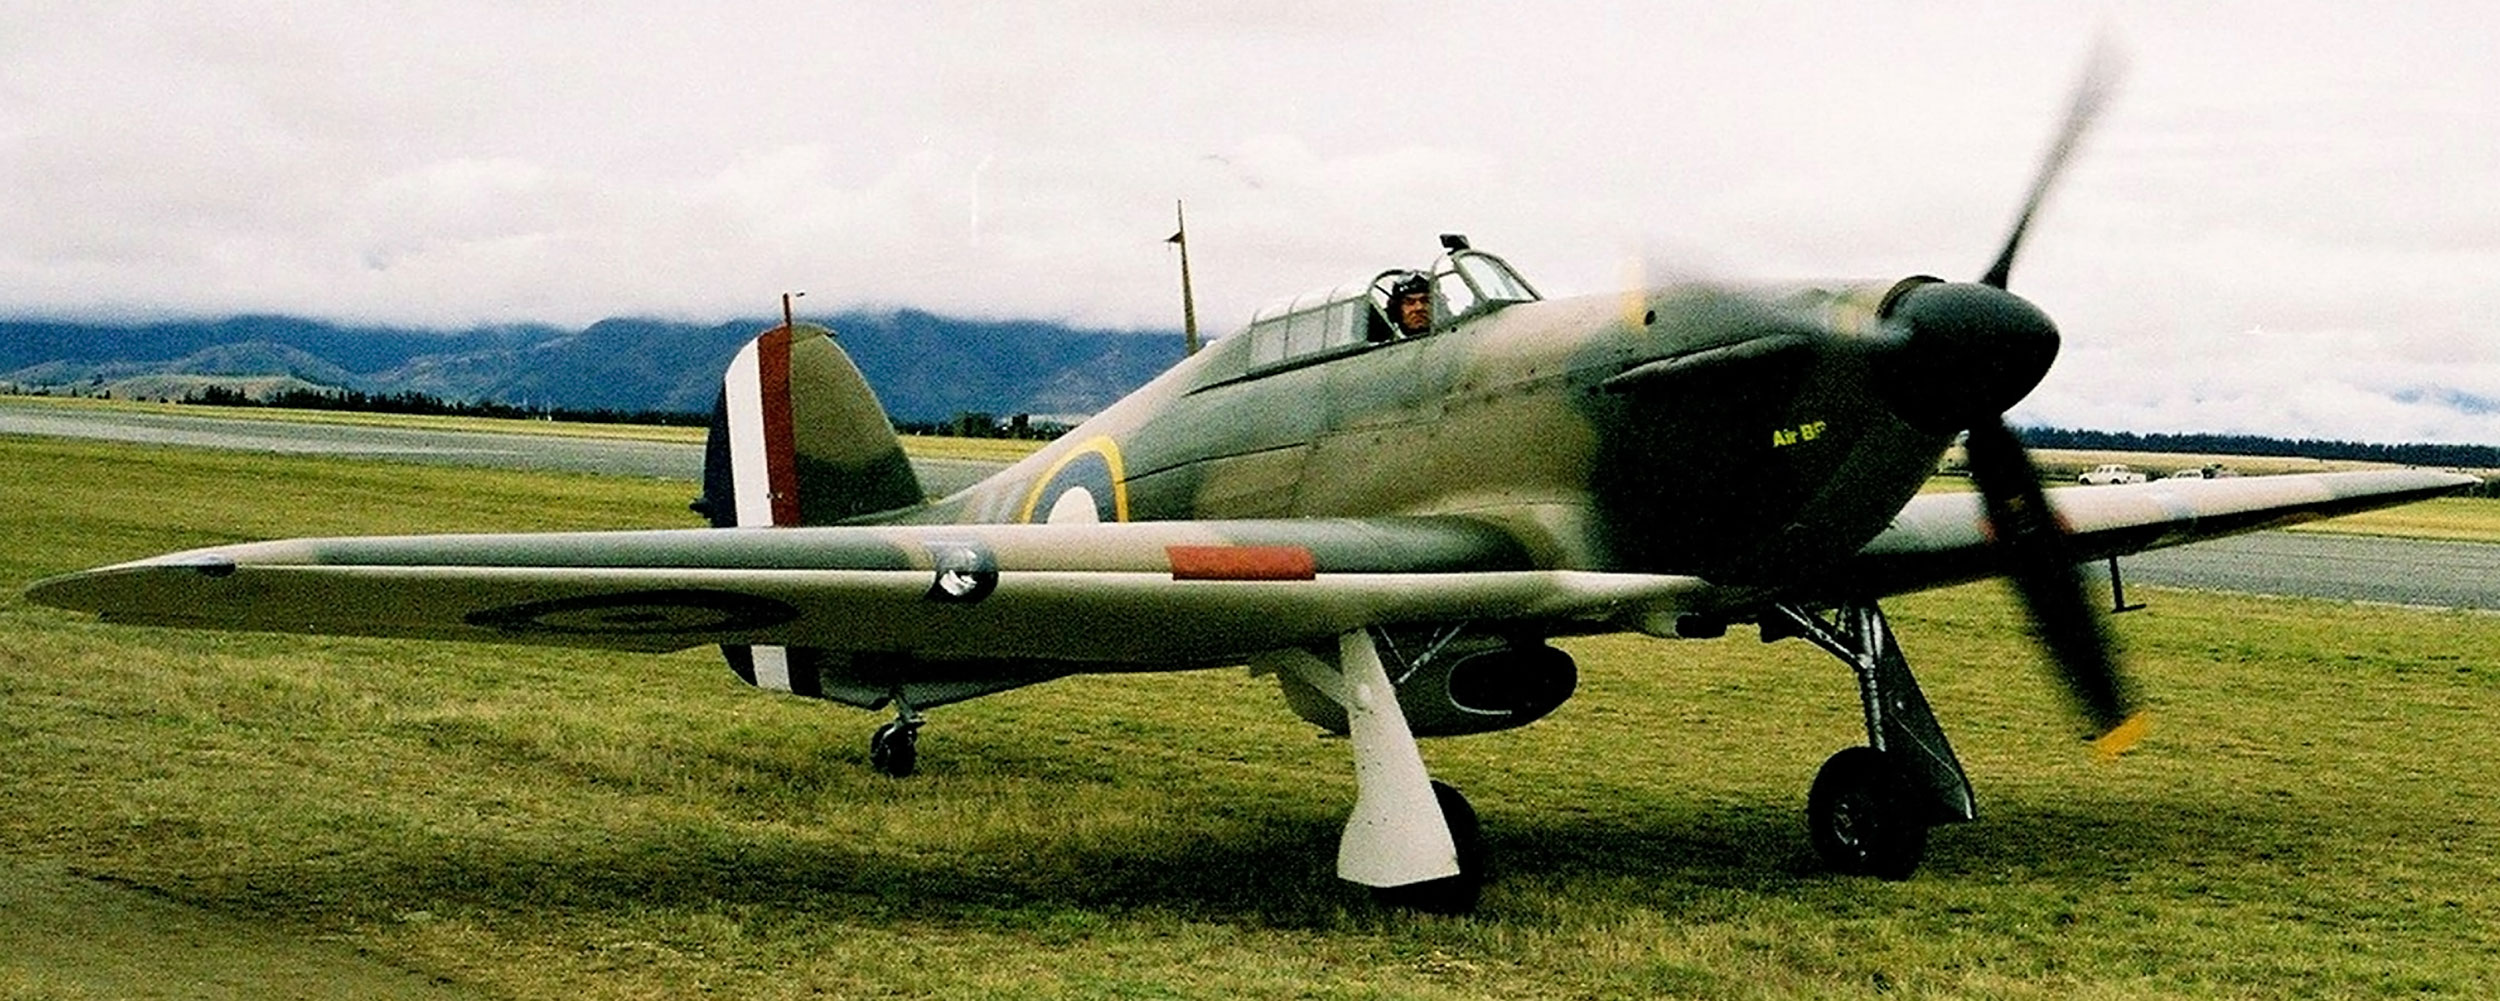 A hurricane war plane on ground with its propeller going at Wanaka, New Zealand